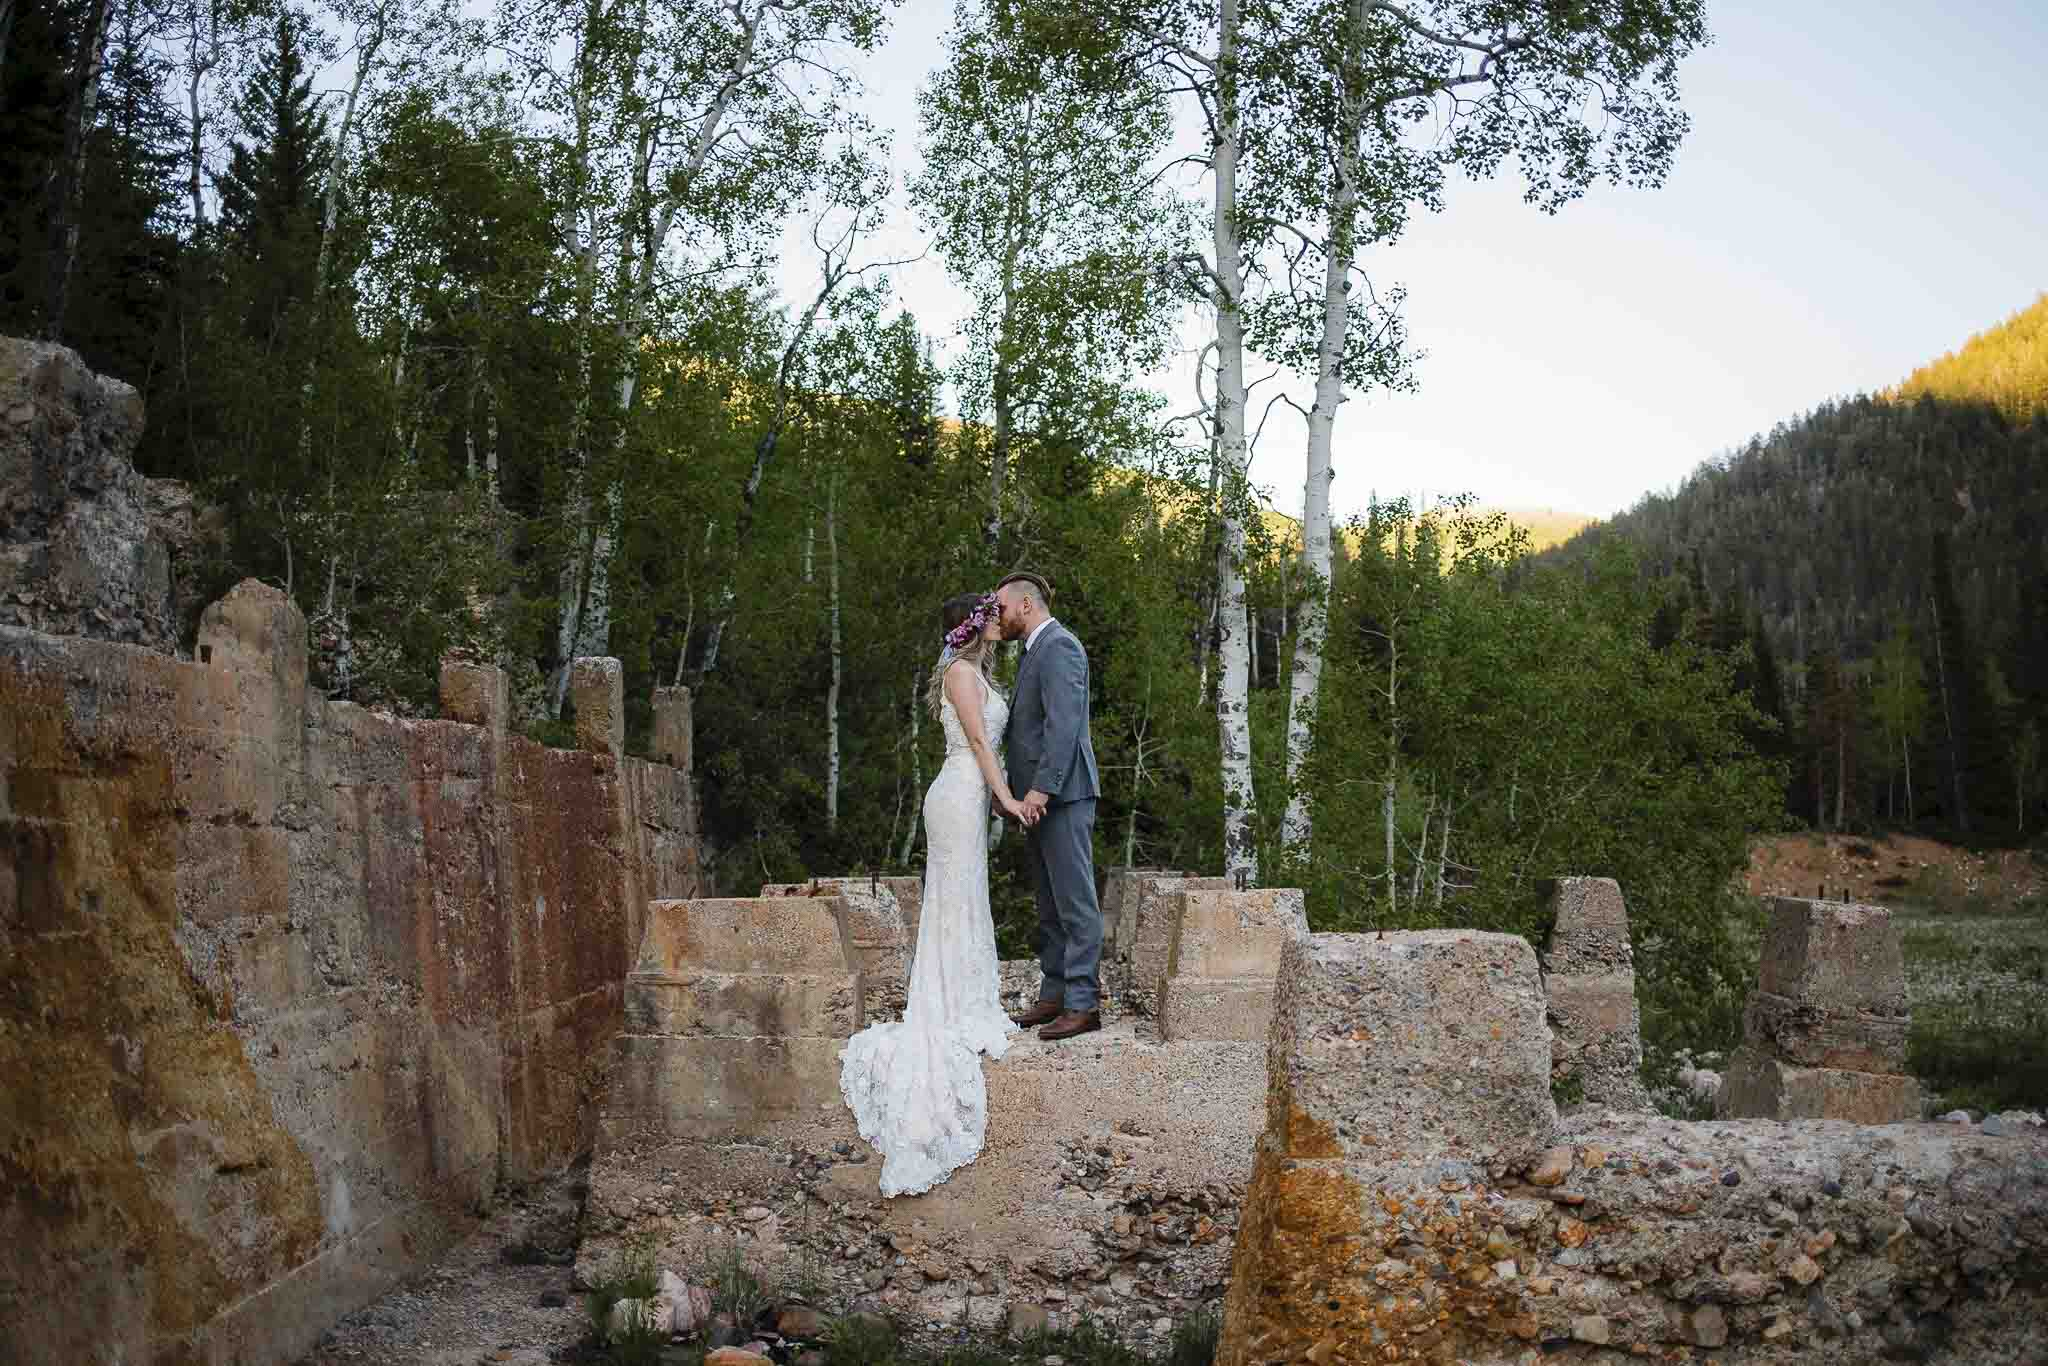 Couple pose for wedding pictures at Forest City, Utah